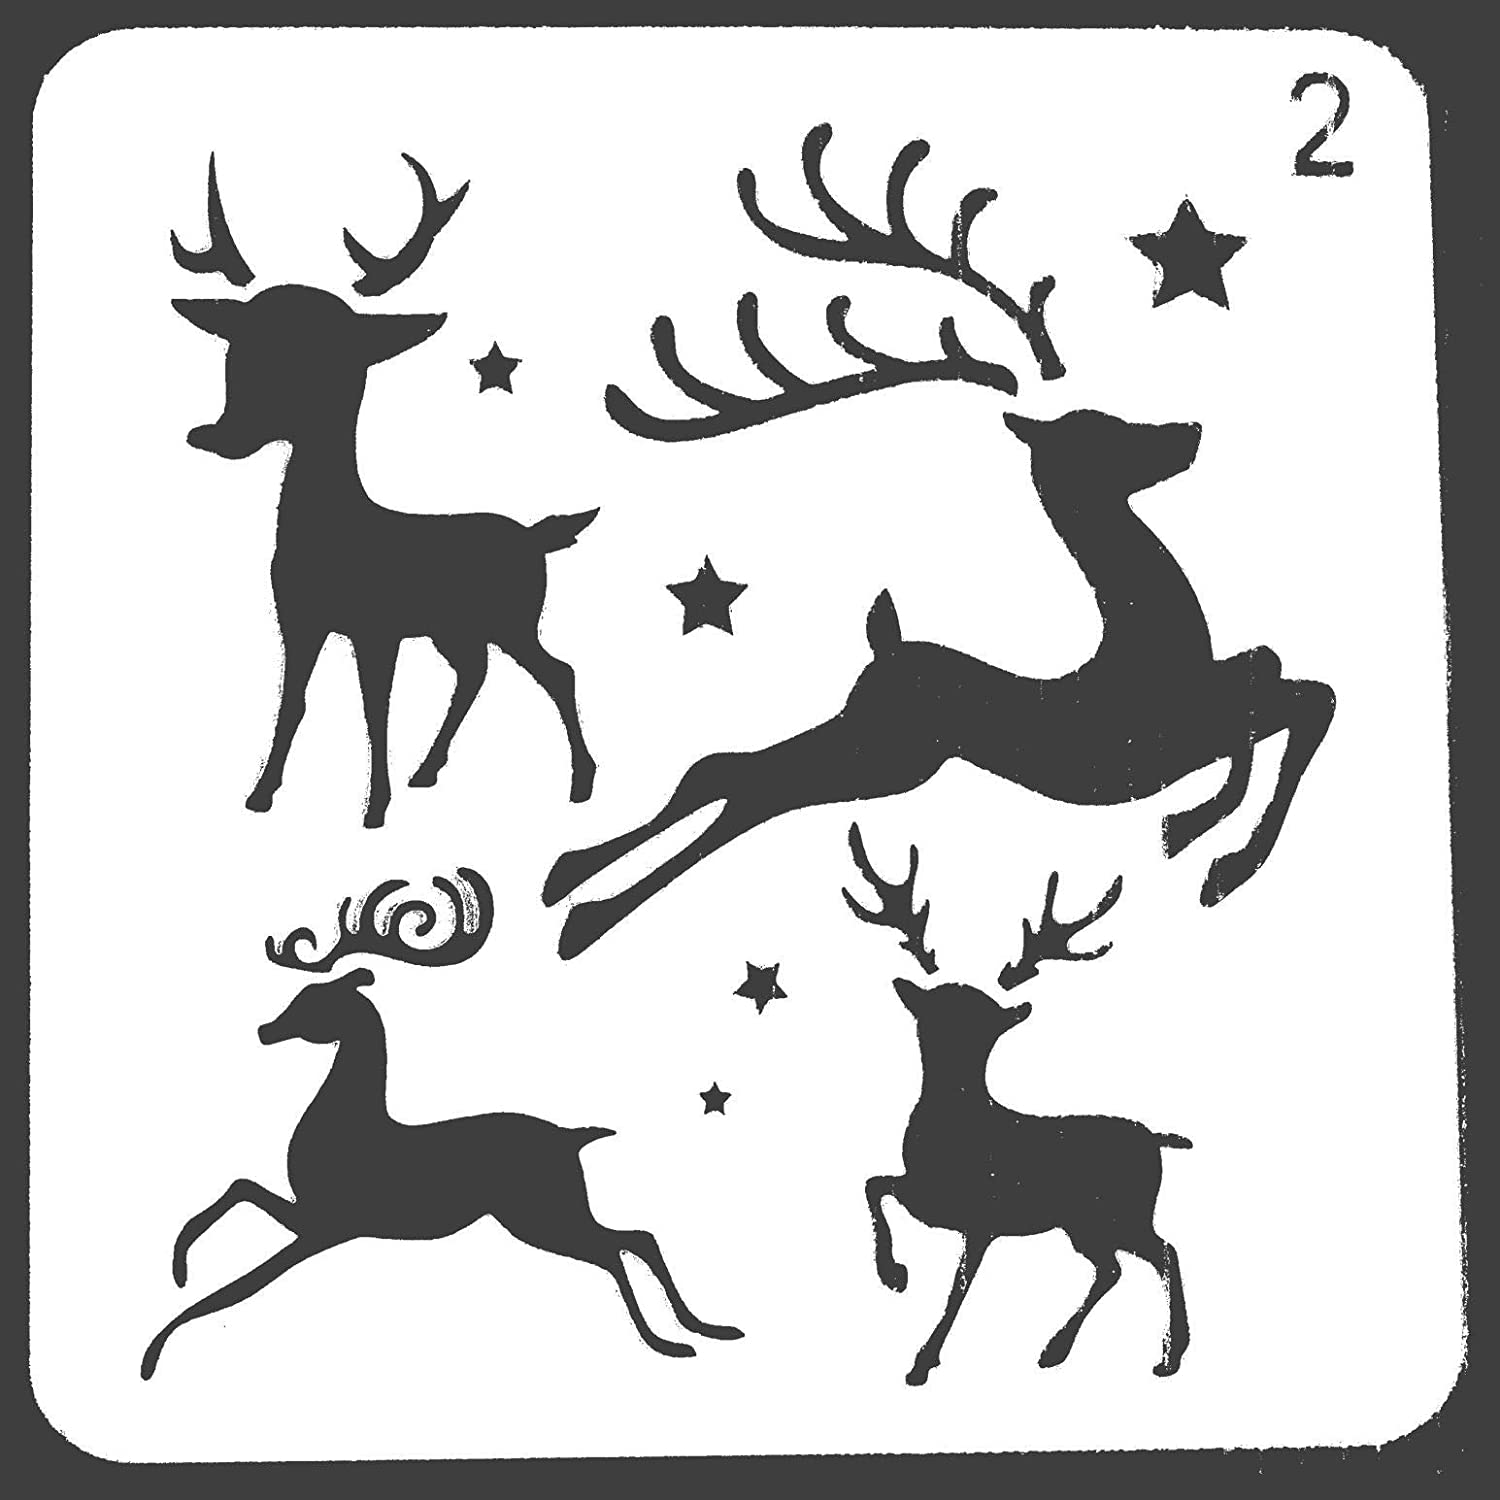 Trees Balls Gift Boxes Christmas Holiday Craft Party Decorations Santa Claus Zest ST Christmas Stencils Templates 8 Piece Merry Christmas Happy New Year Reindeers Snowman,Snowflakes